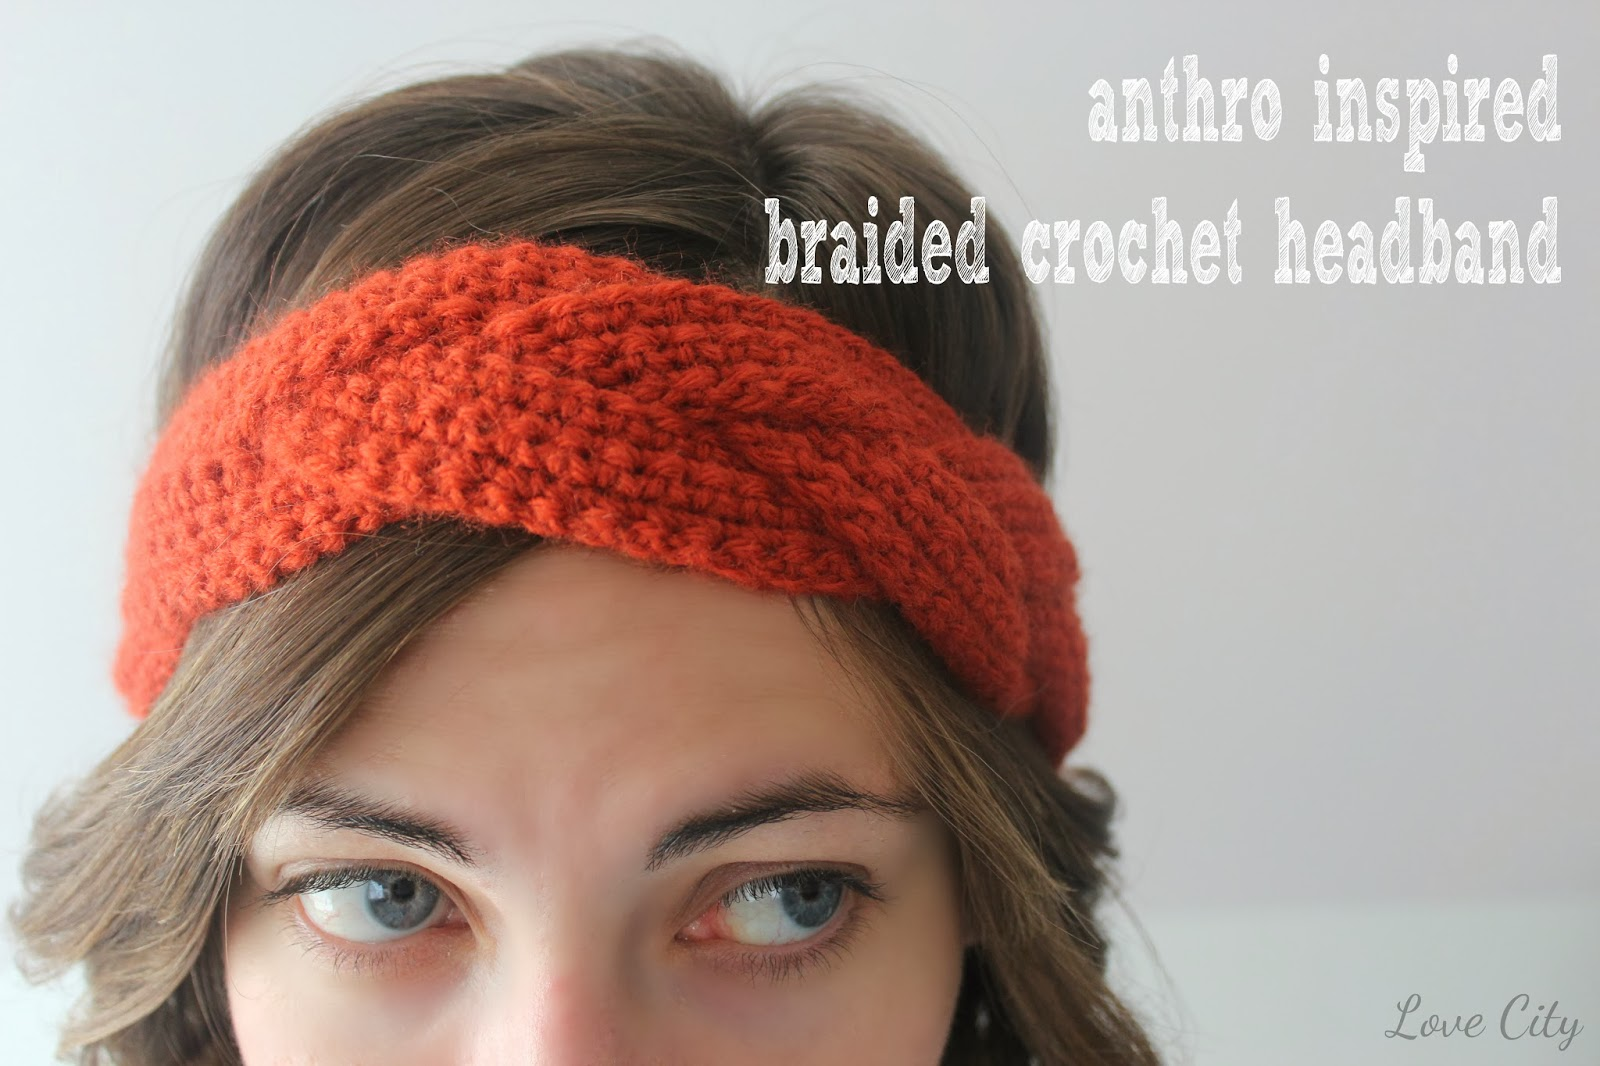 Crochet Headbands Free Crochet Headband Patterns LONG HAIRSTYLES